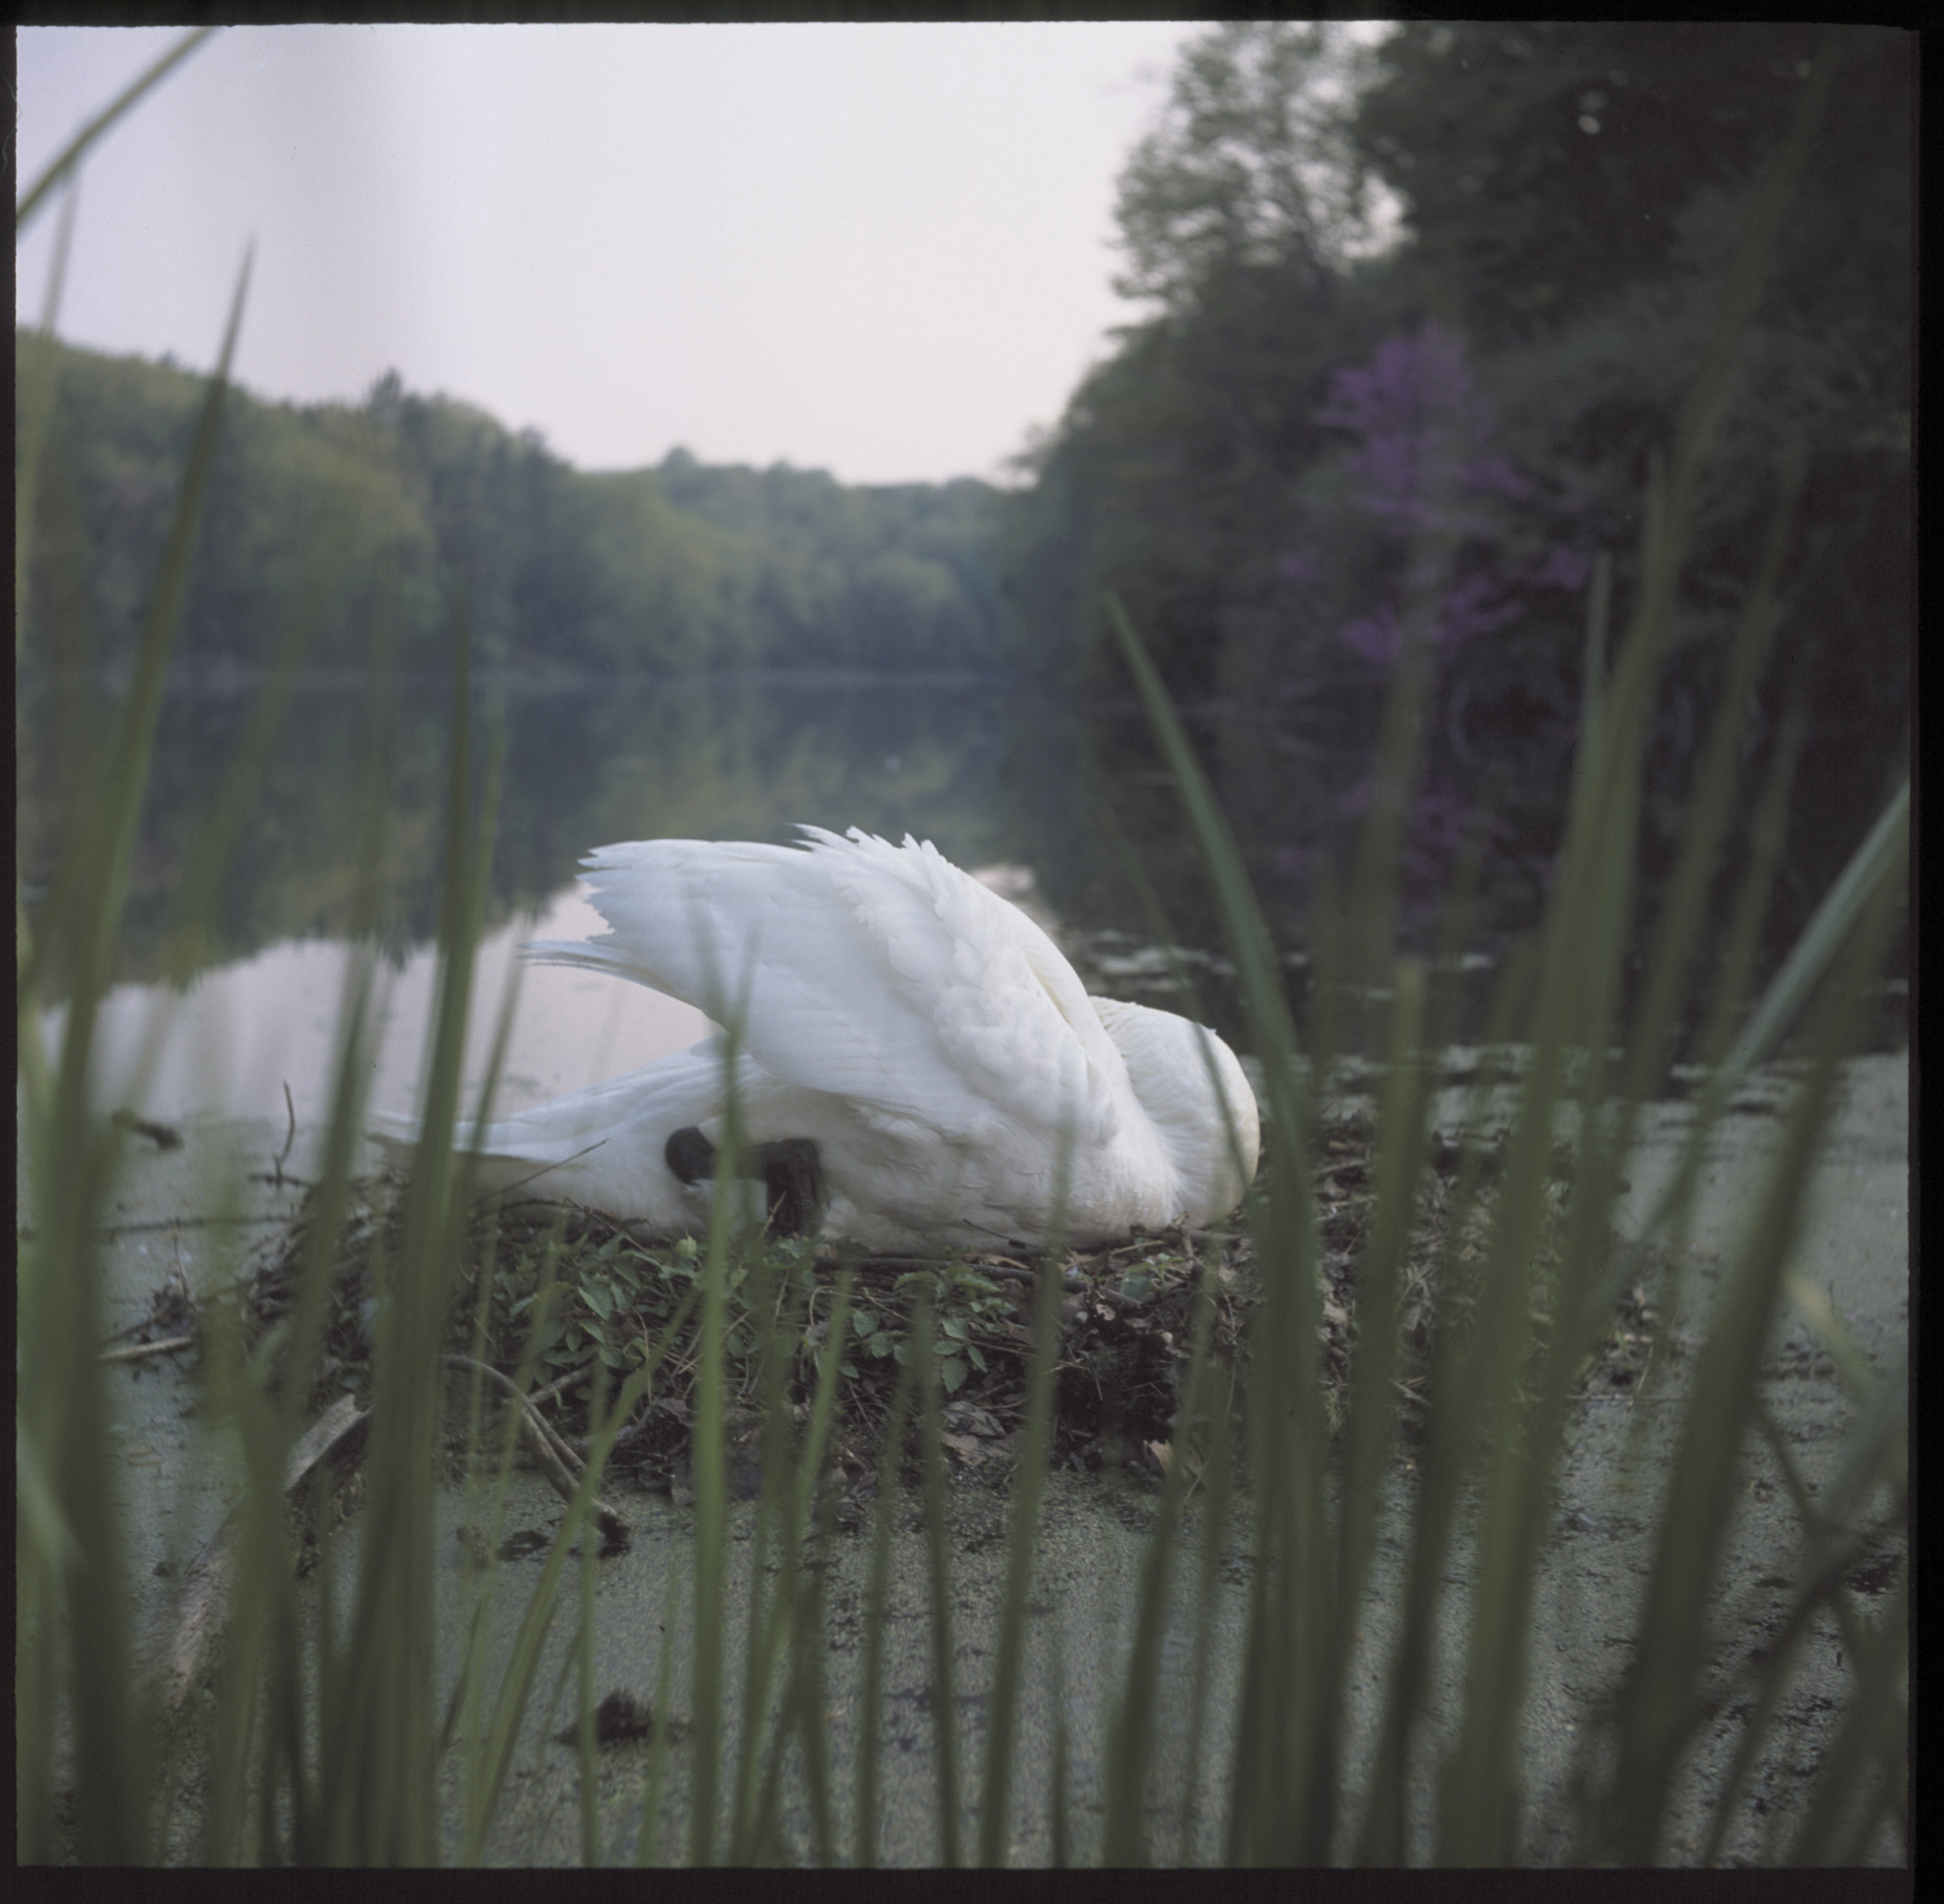 2008, 120 Color Negative Film